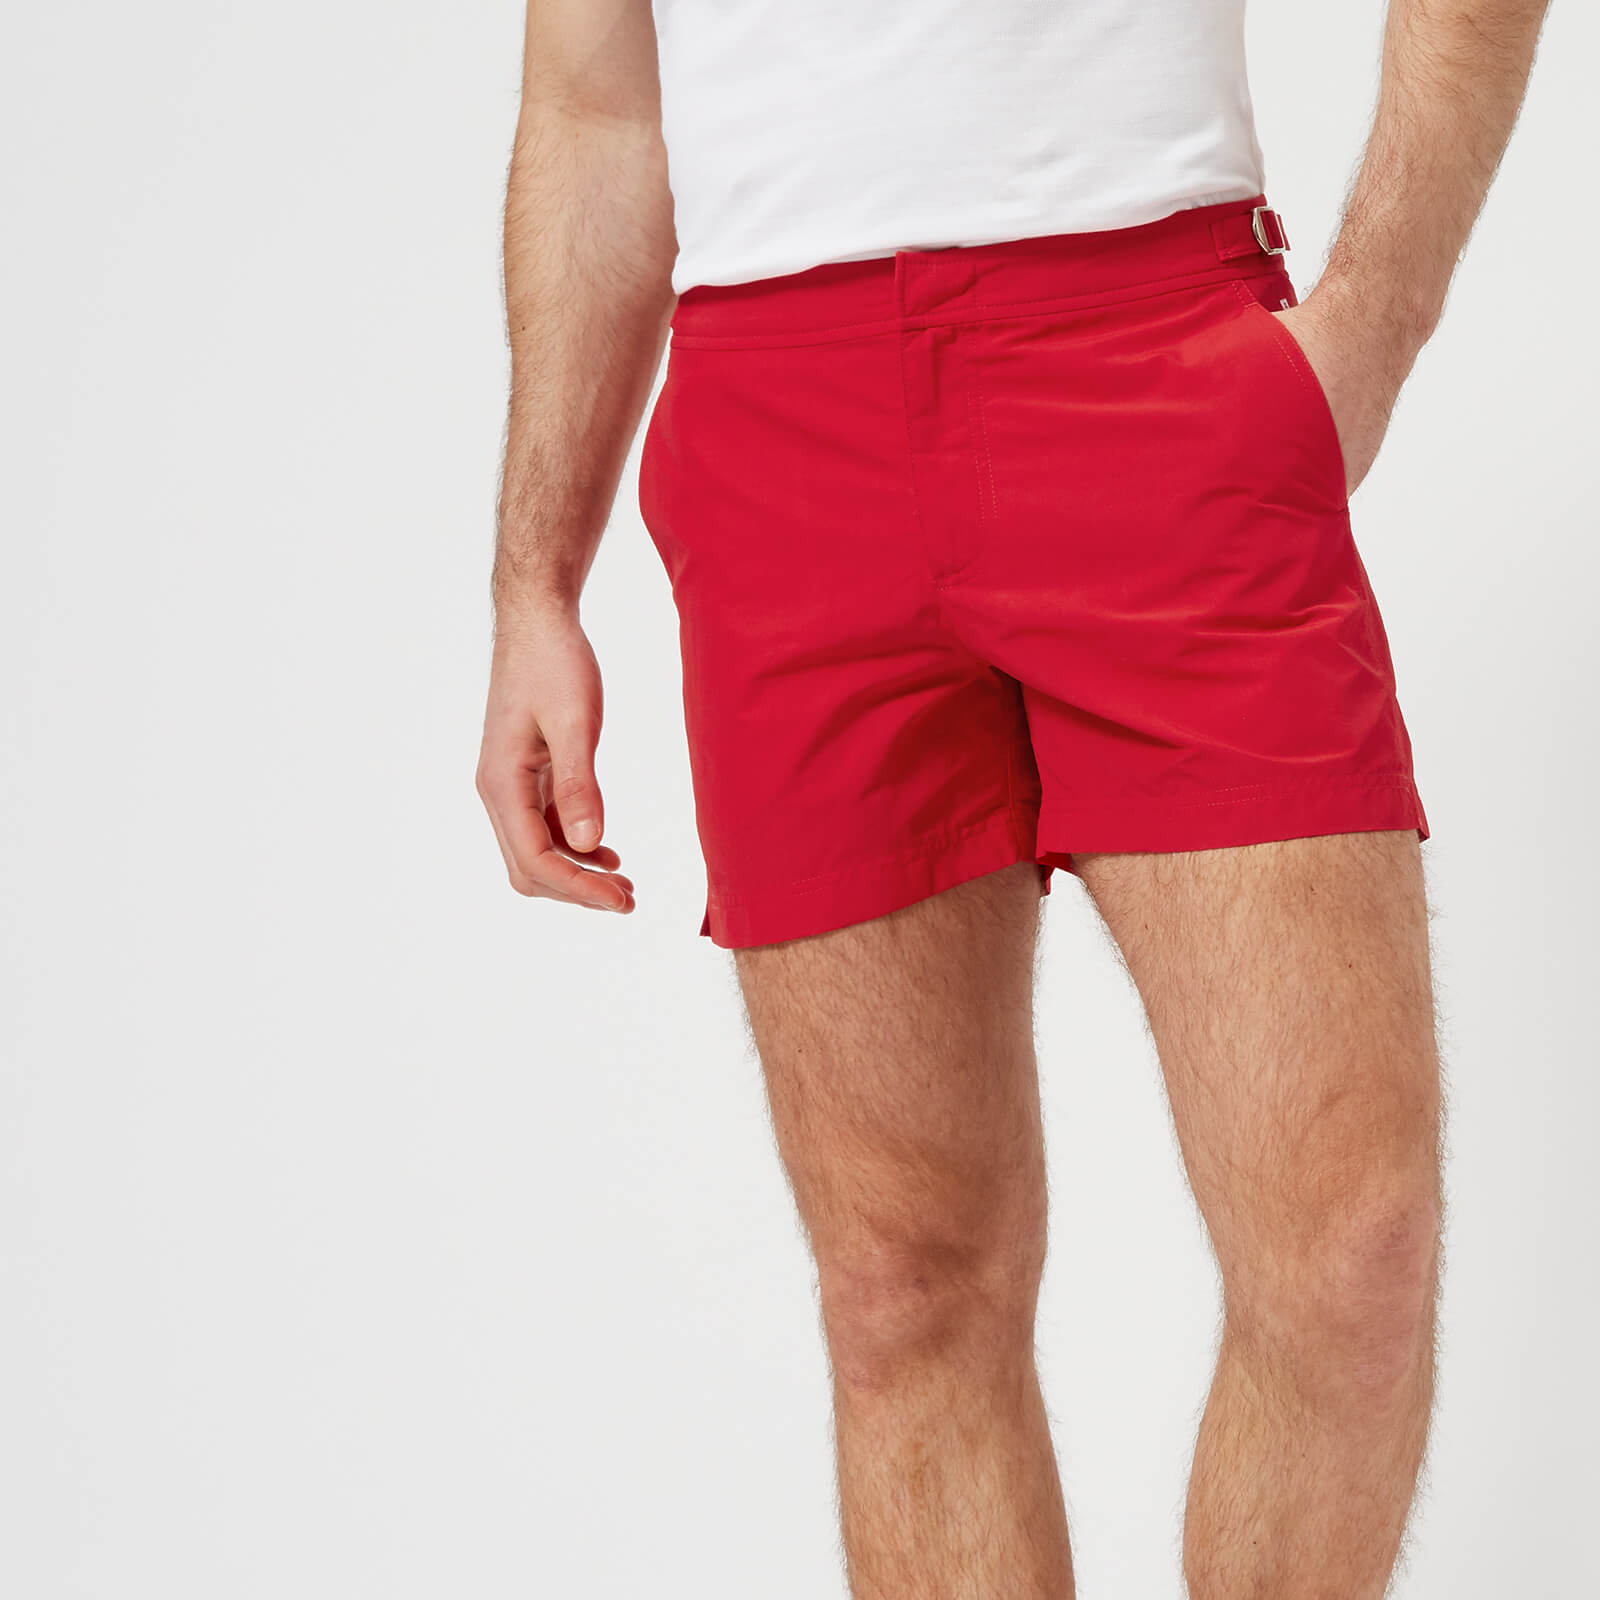 c90e29d024 Orlebar Brown Men's Setter Swim Shorts - Rescue Red - Free UK Delivery over  £50